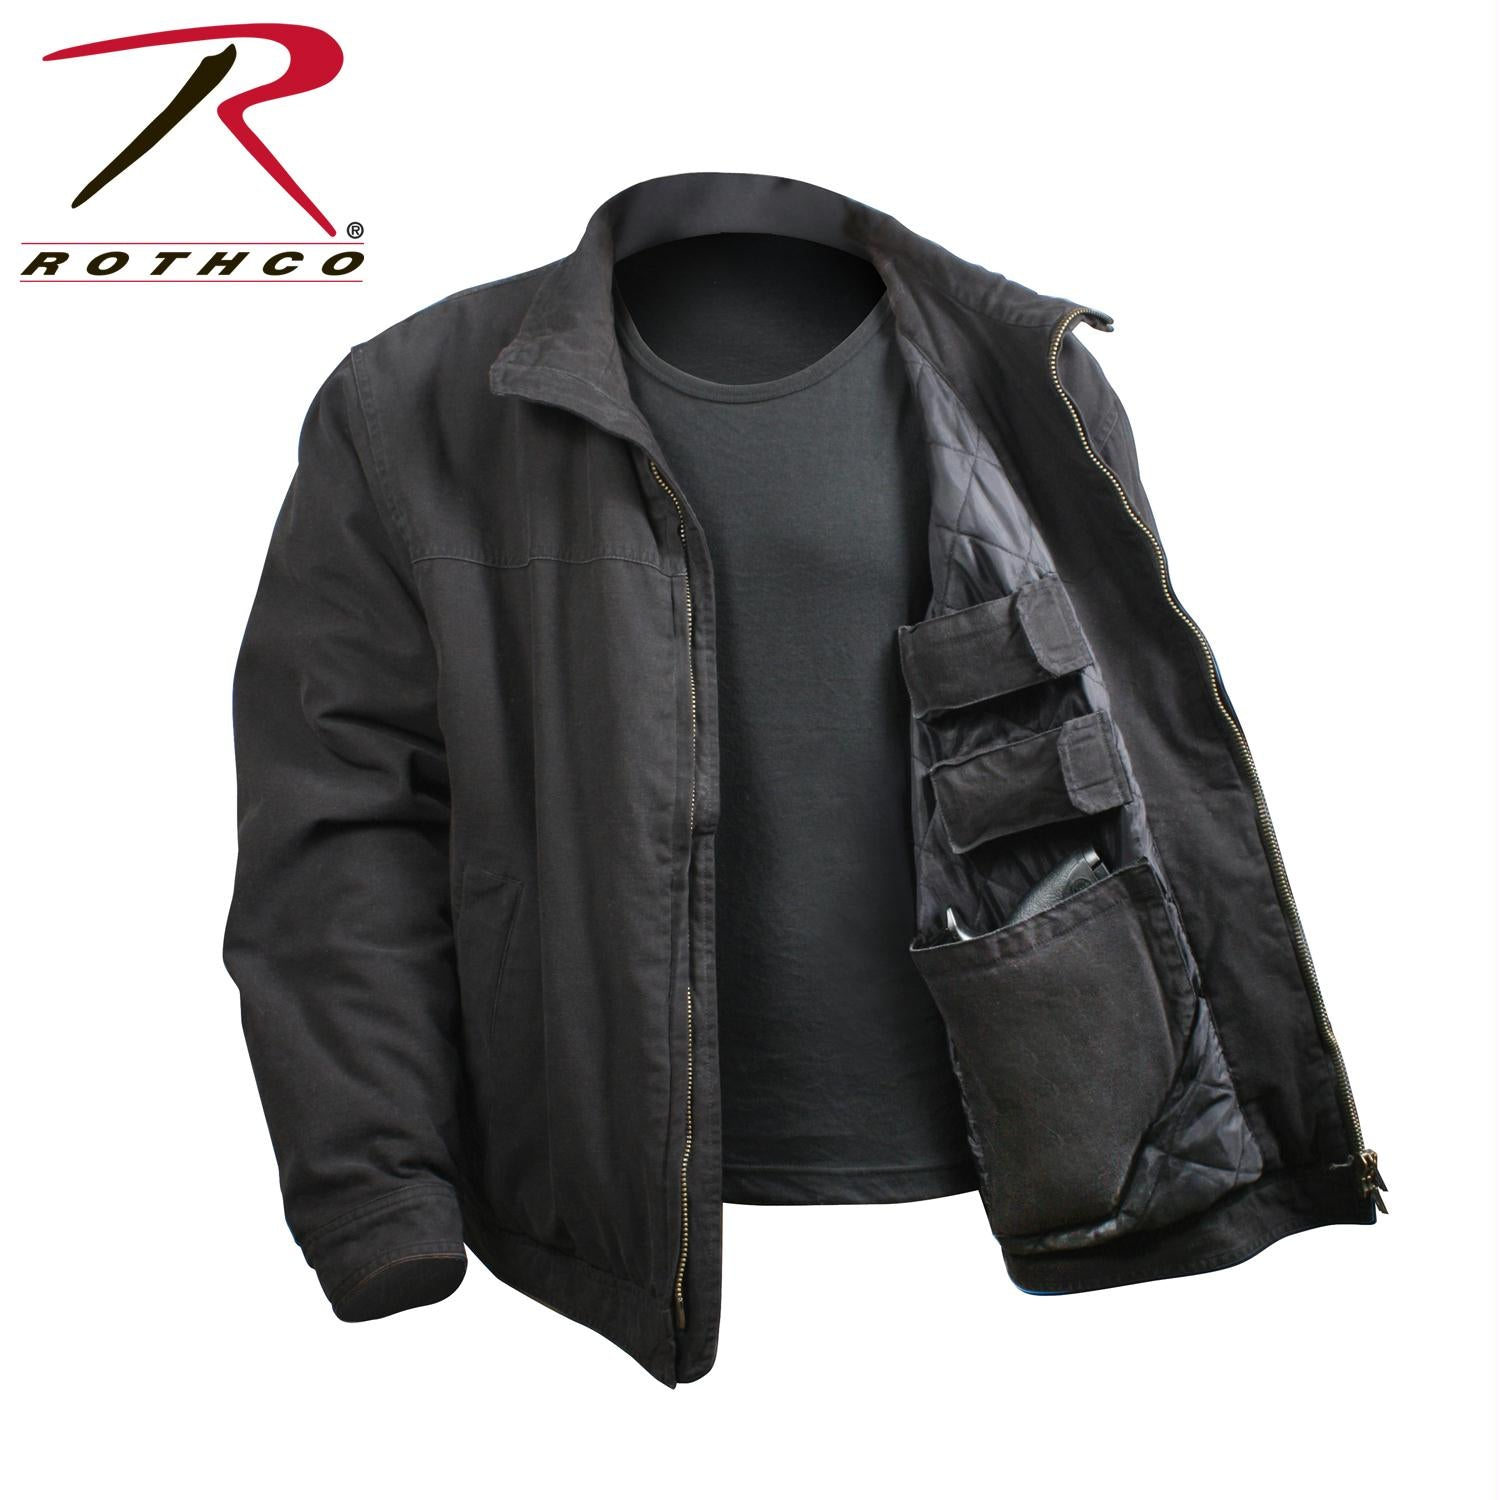 Rothco 3 Season Concealed Carry Jacket - Black / 5XL